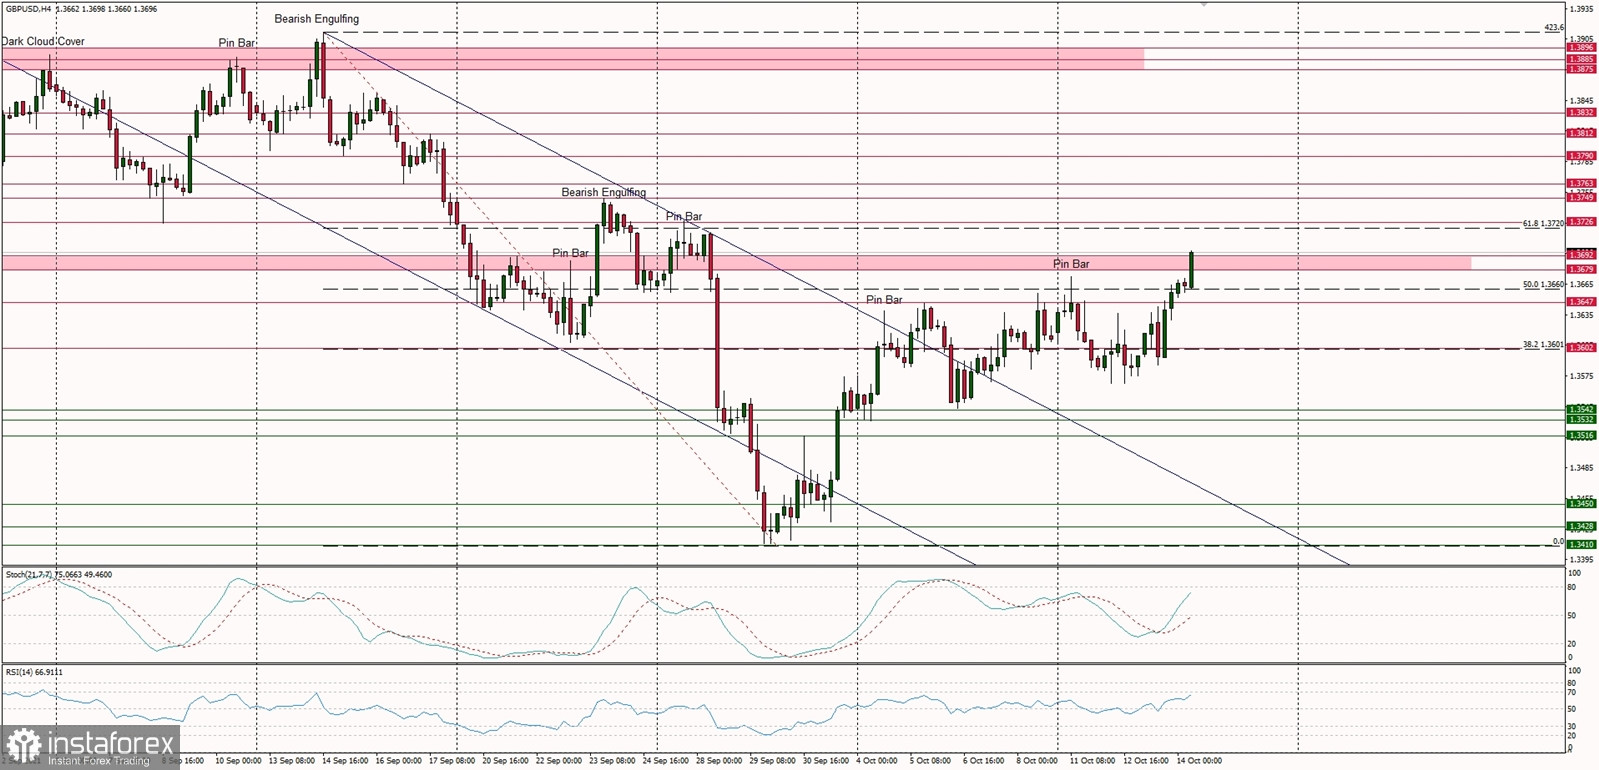 Technical Analysis of GBP/USD for October 14, 2021